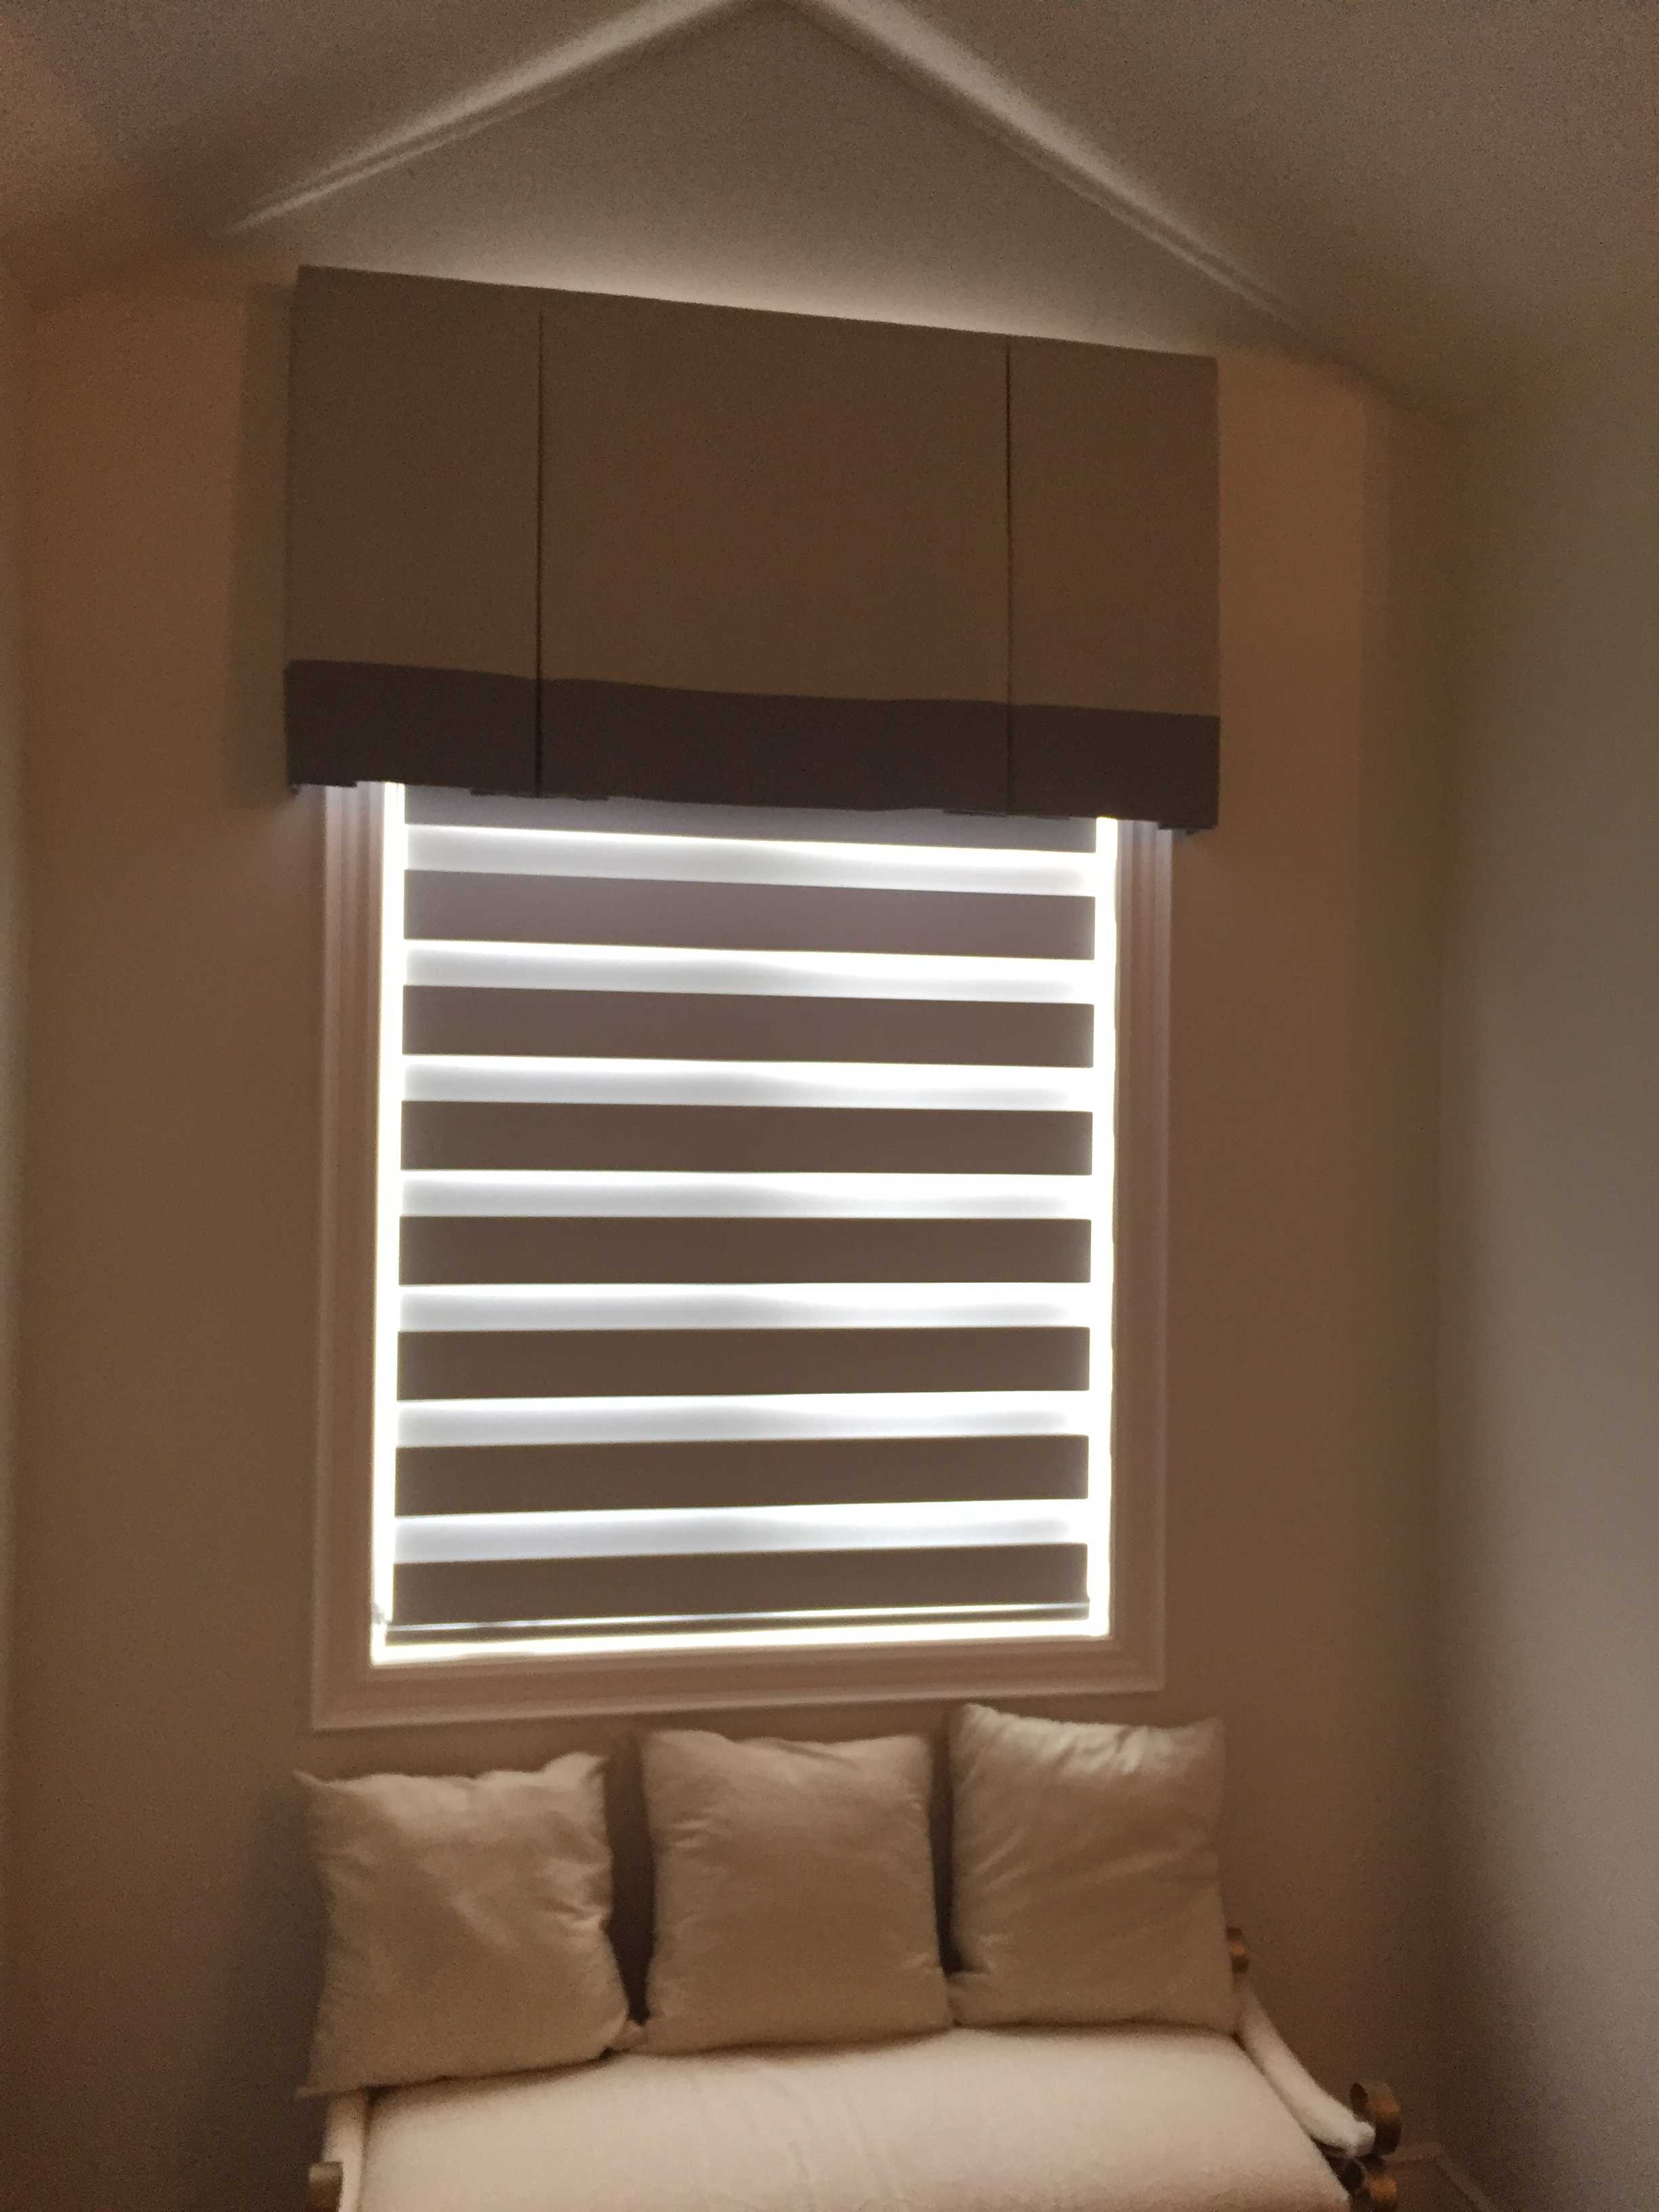 pin blinds pirouette a noche and window d y roman pinterest furnishing